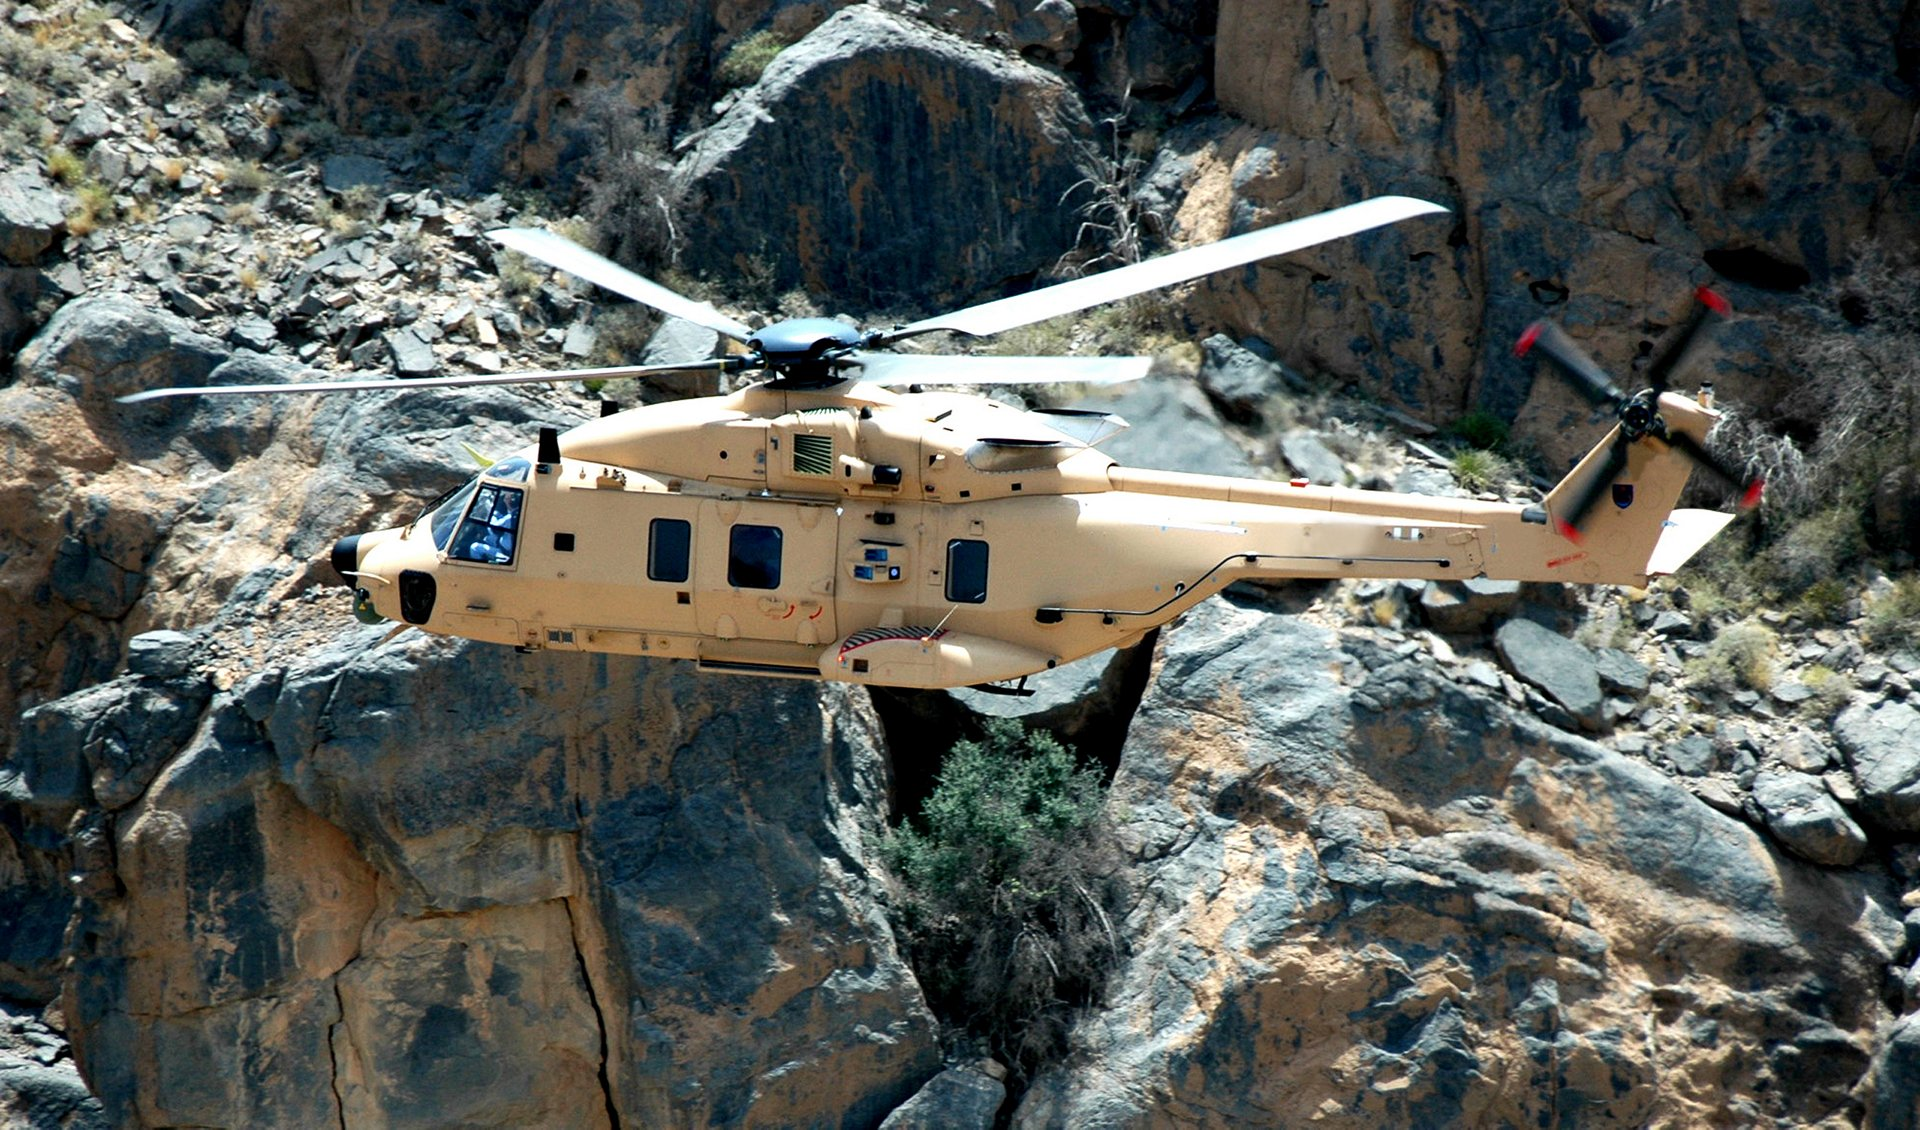 Qatar has signed a contract for the purchase of 28 NH90 military helicopters